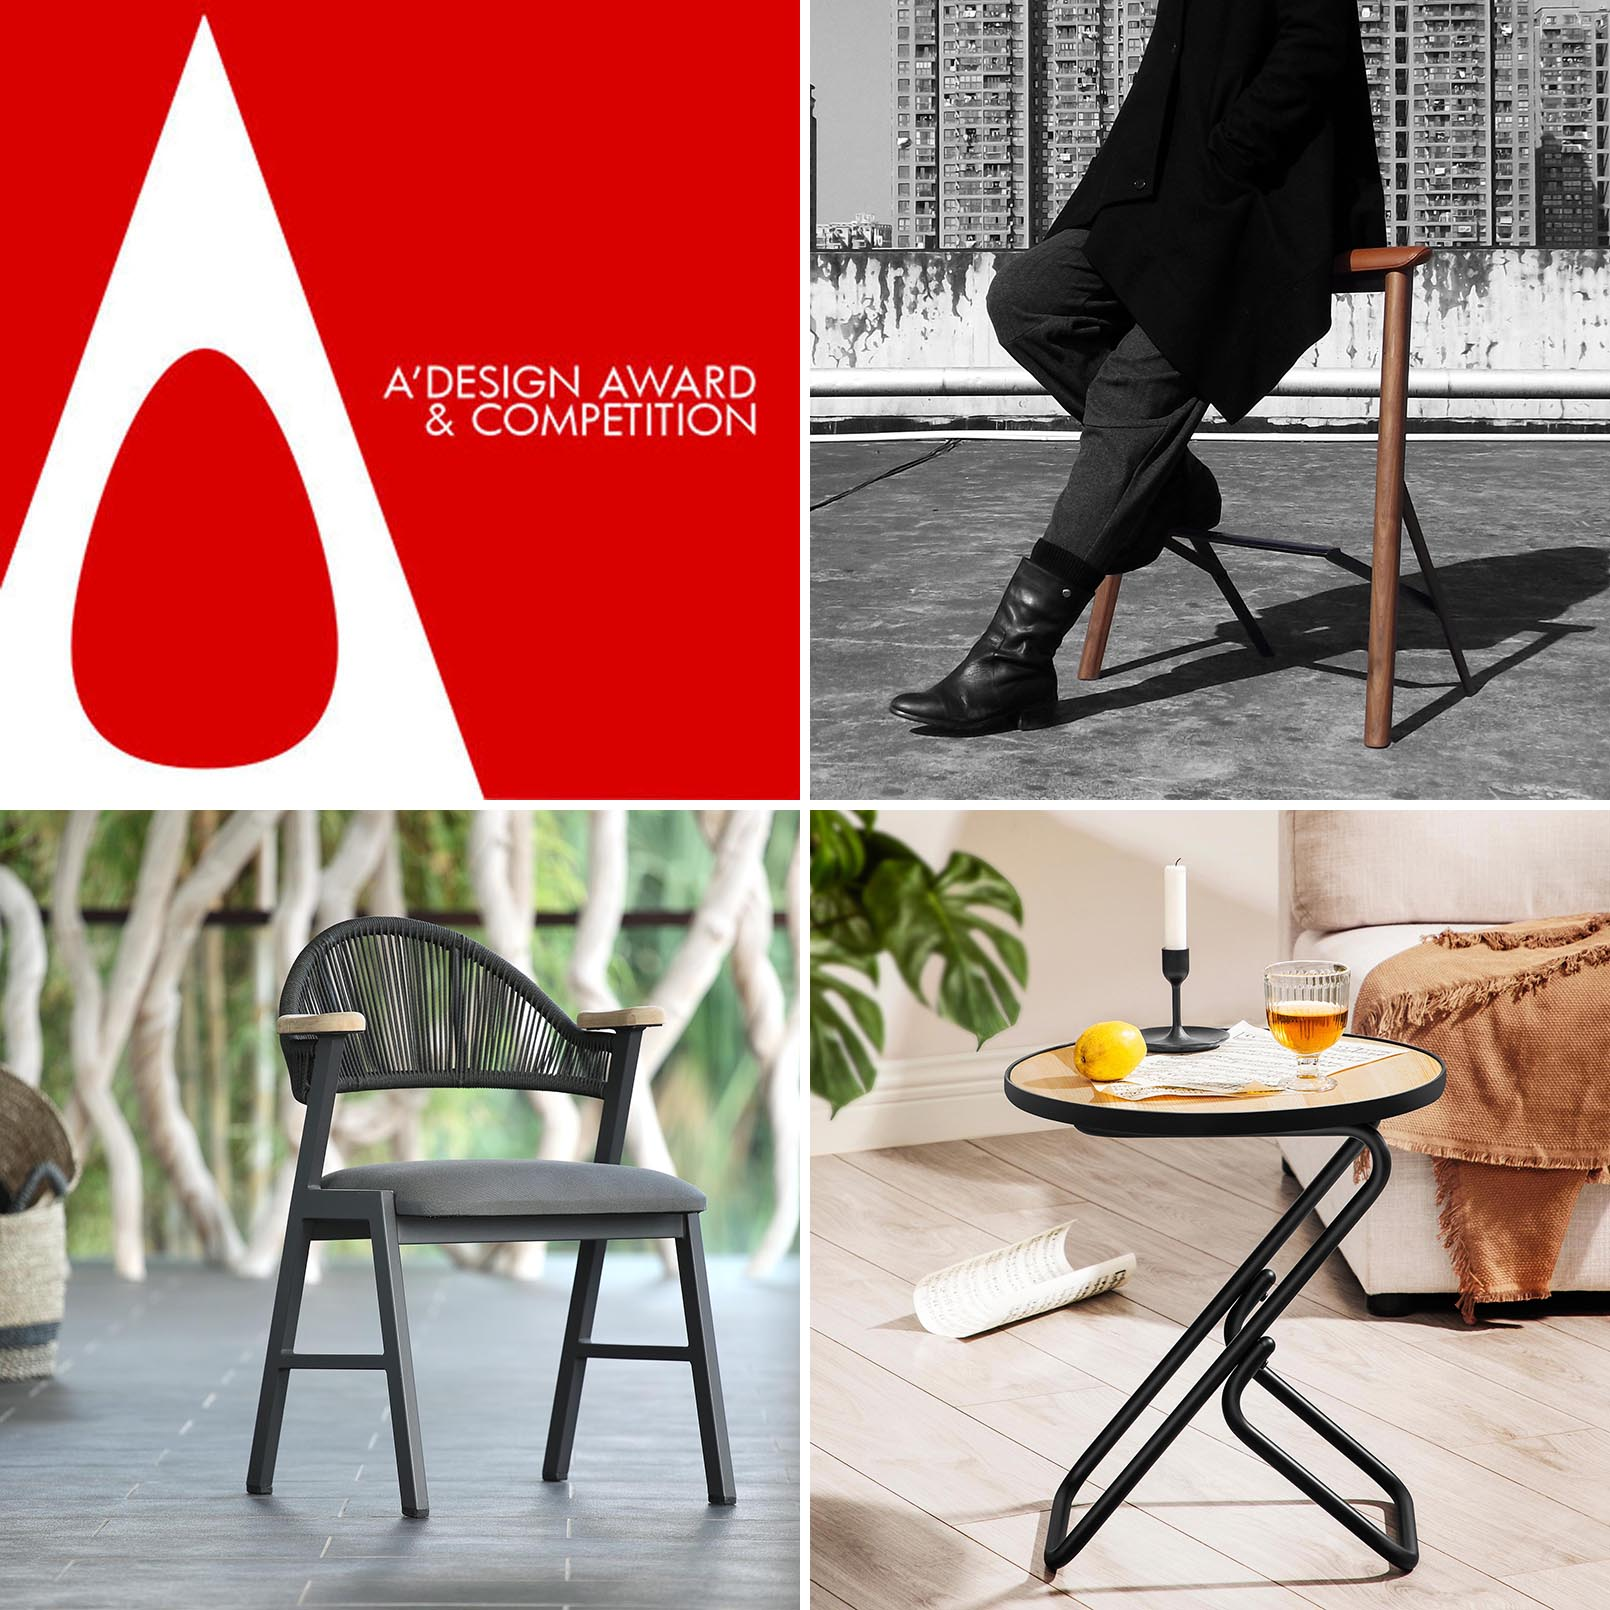 A' Design Award & Competition is the Worlds' leading design accolade reaching design enthusiasts around the world, and showcasing the 14,500 award winners from 104 different design disciplines.